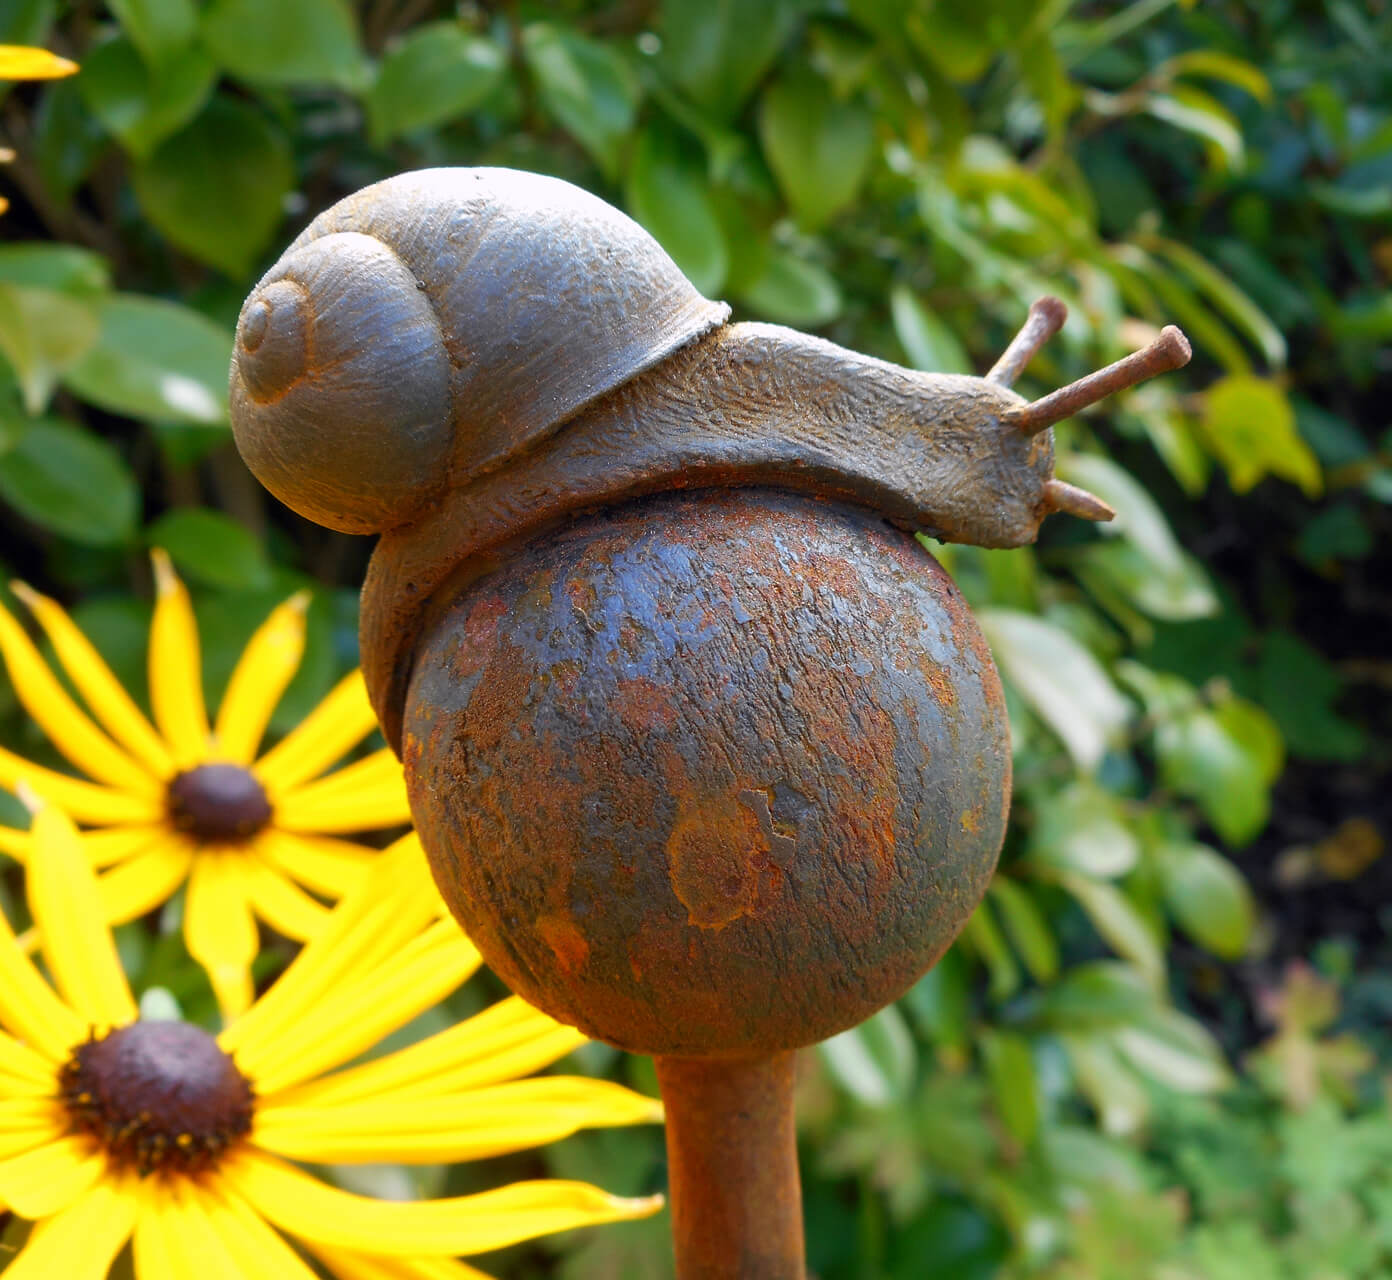 Snail on Ball side-view